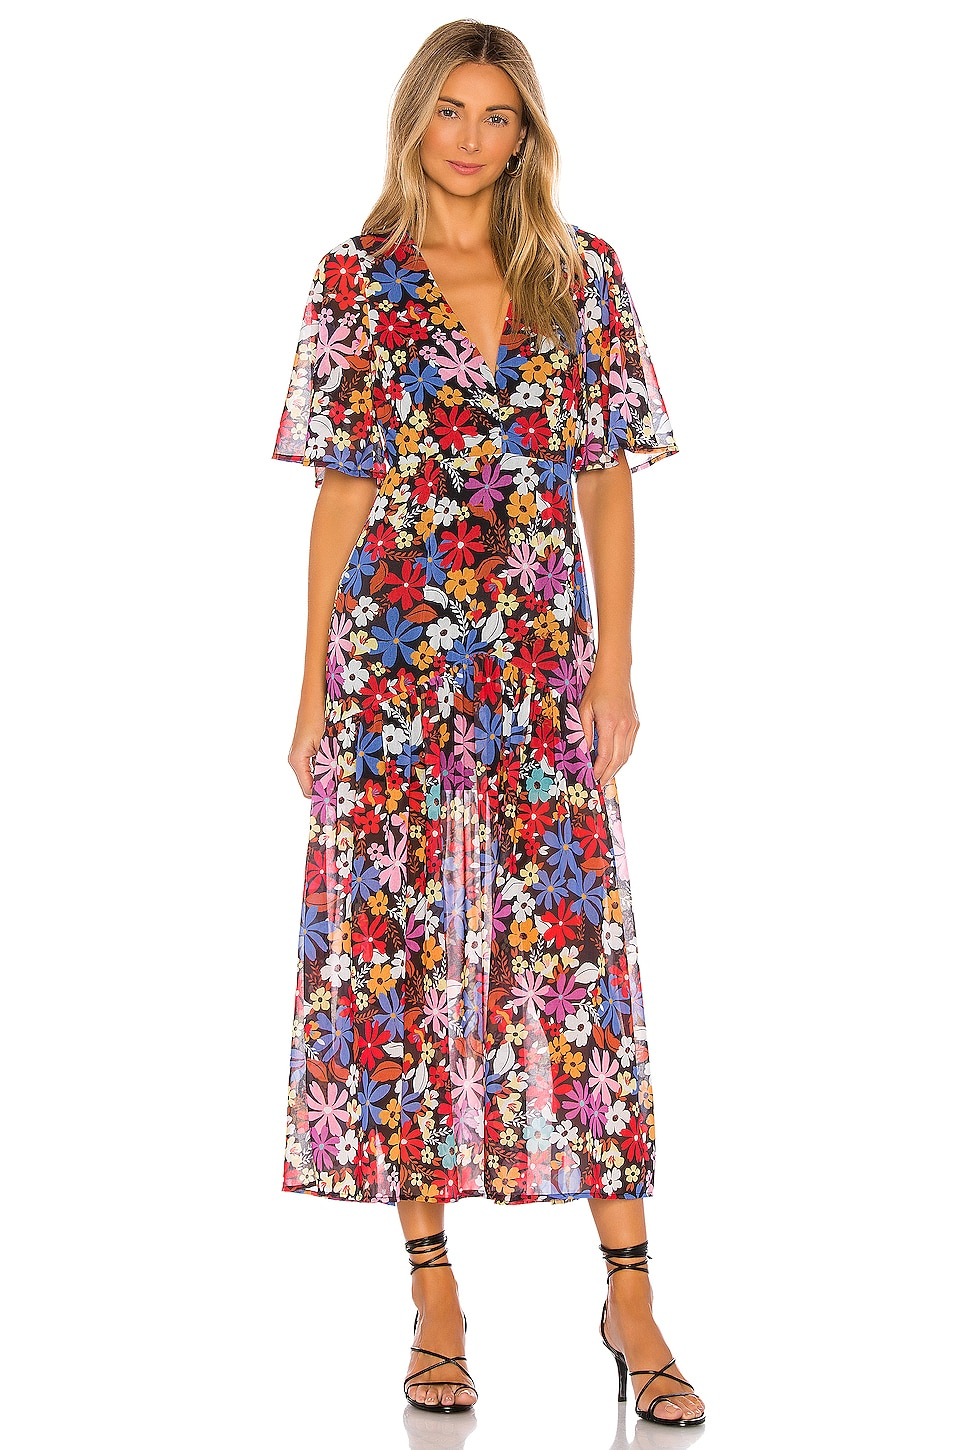 Louise Dress             House of Harlow 1960                                                                                                                                         Sale price:                                                                       CA$ 140.43                                                                  Previous price:                                                                       CA$ 348.25 2